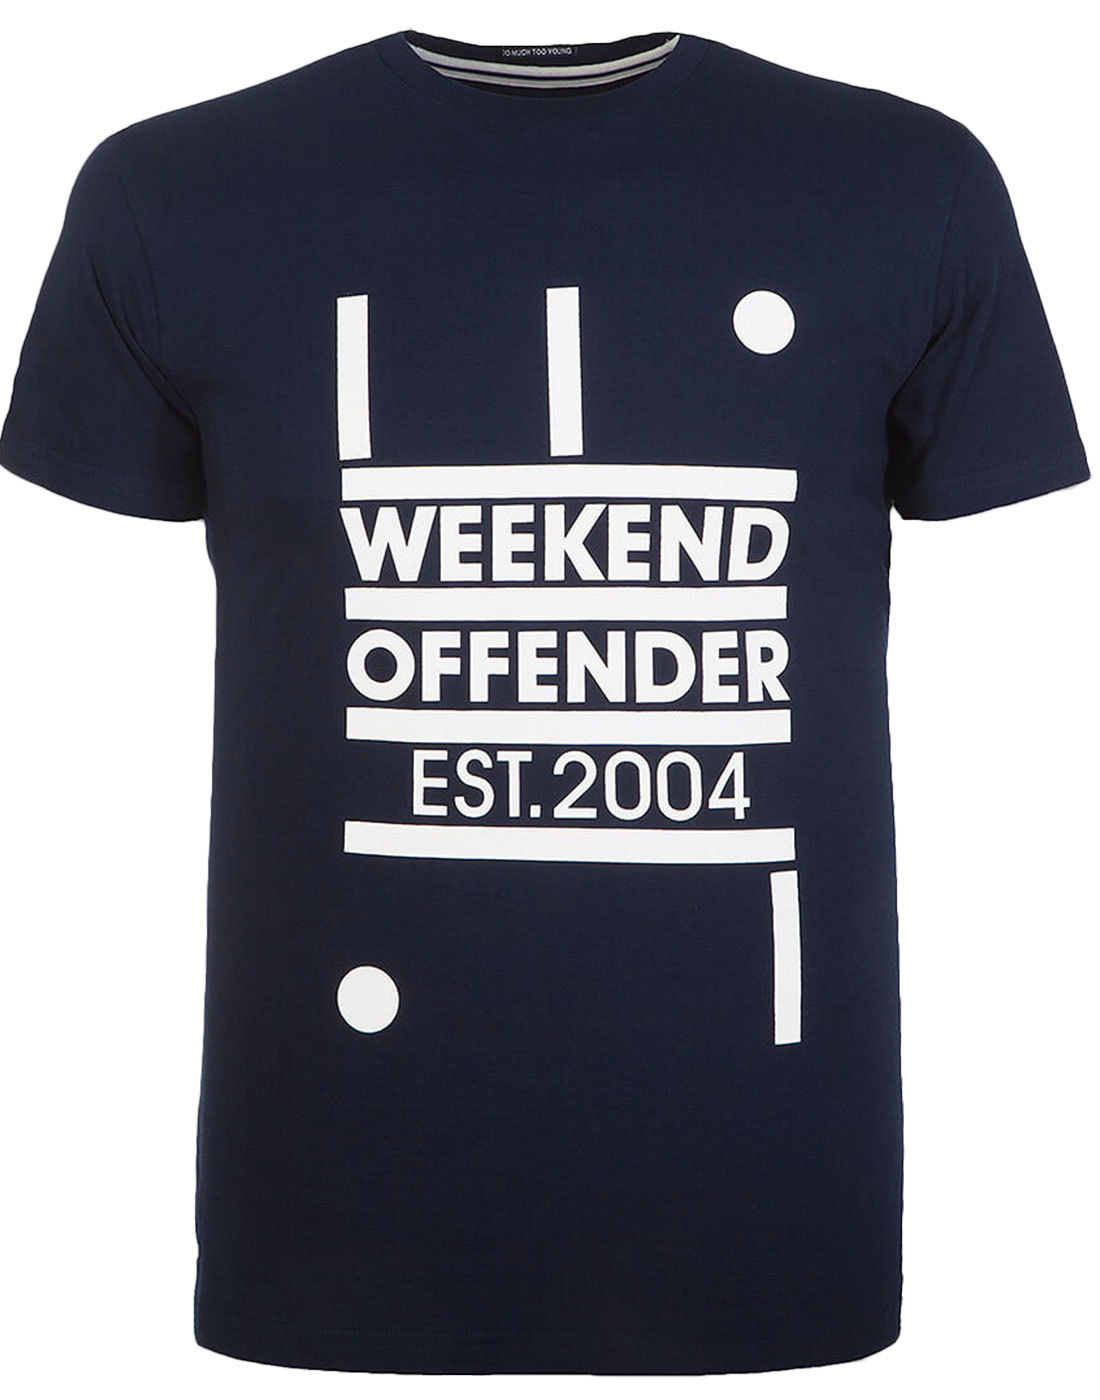 Movement WEEKEND OFFENDER Retro Indie T-Shirt